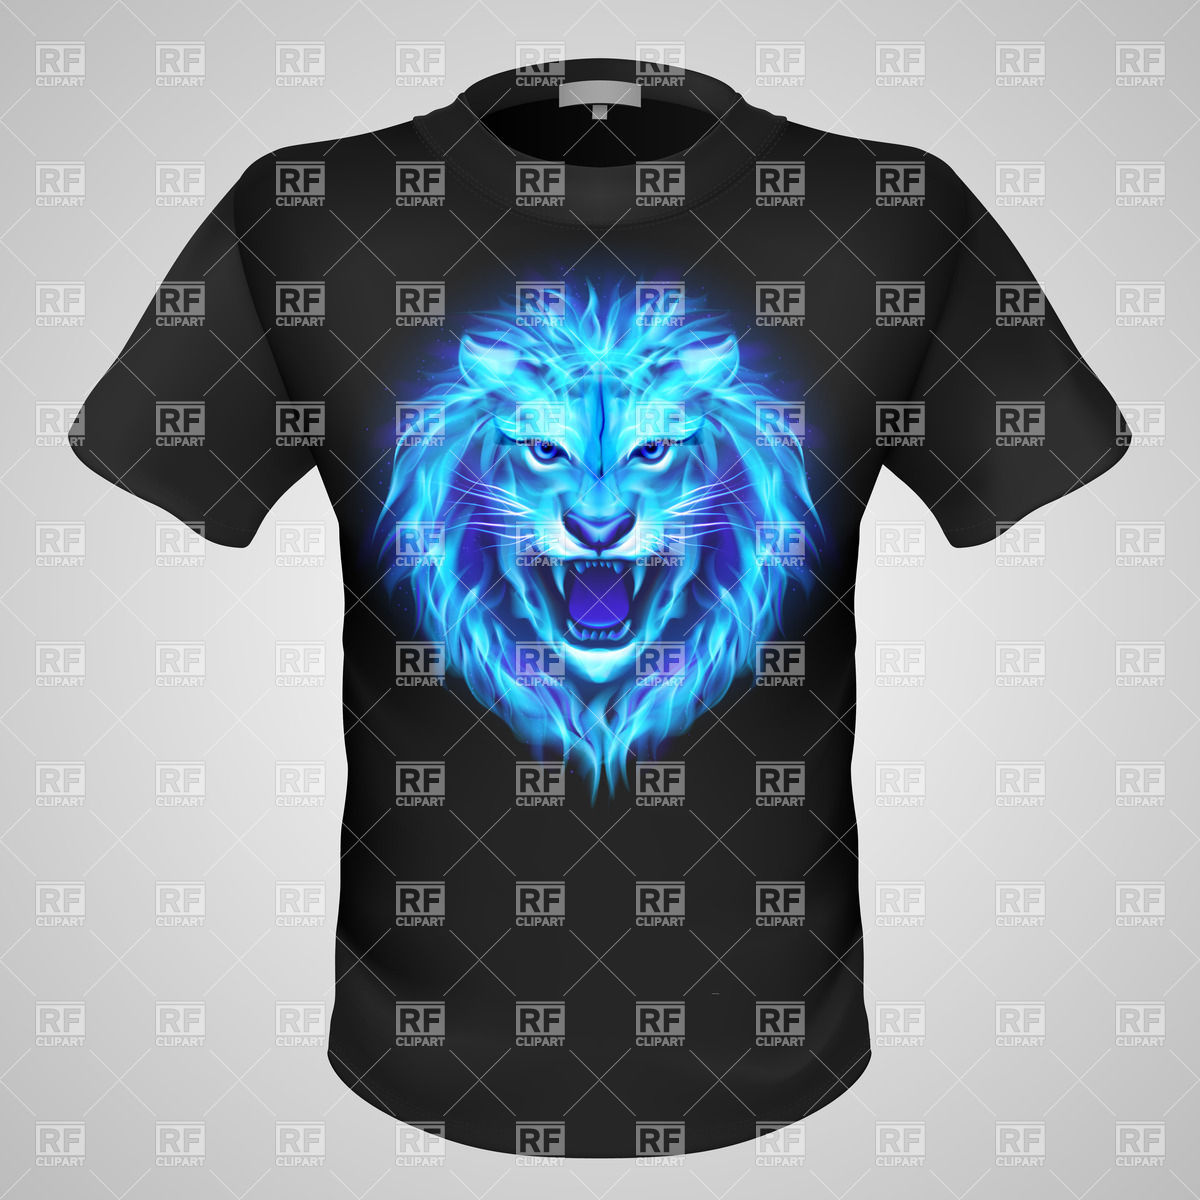 1200x1200 Black Male T Shirt With Print Of Blue Fiery Lion Head Vector Image